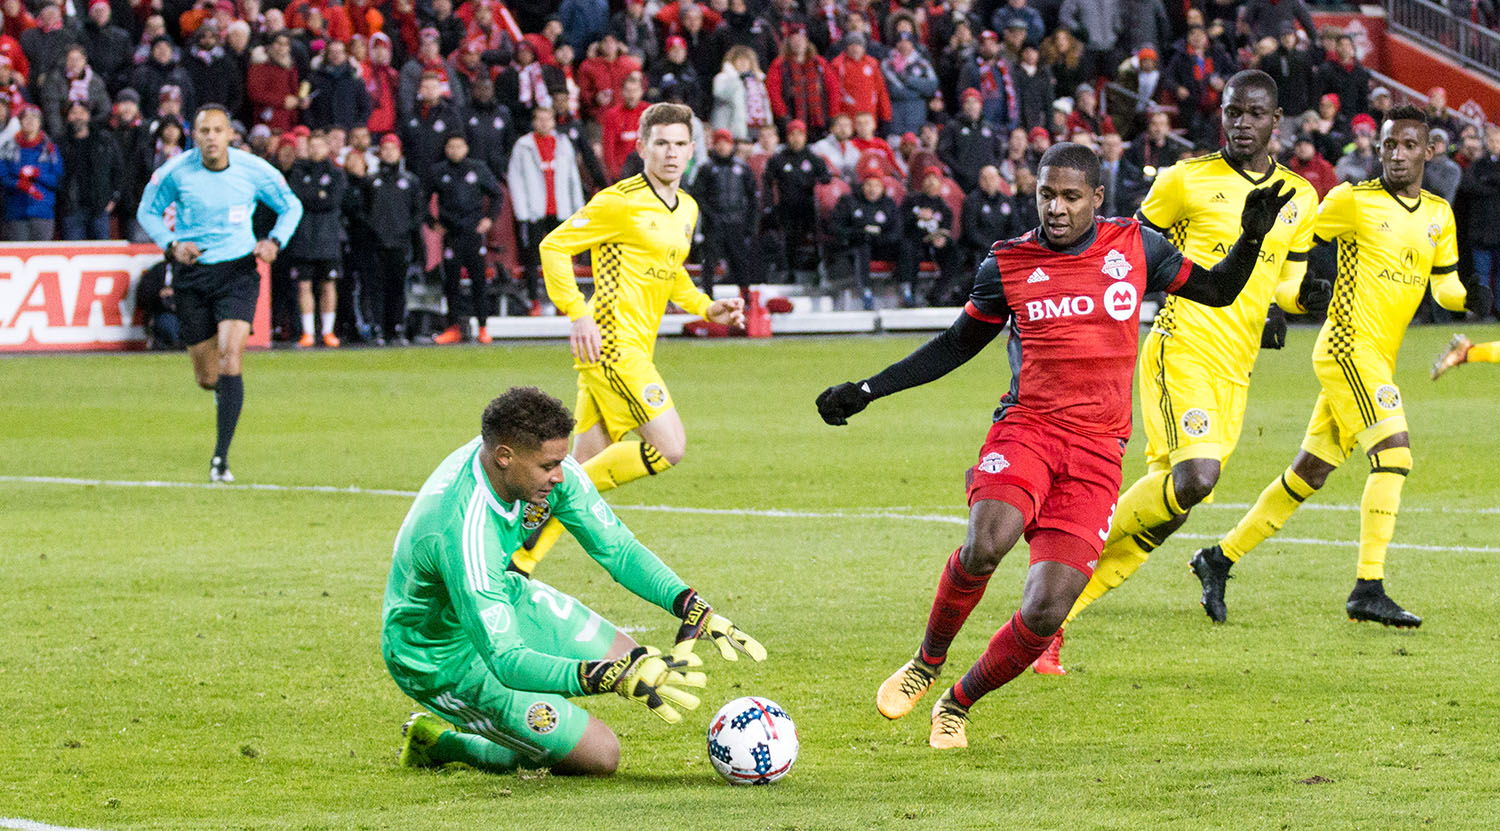 Armando Cooper trying to get to the ball before the Columbus Crew goalkeeper can get to it.Image by Dennis Marciniak of denMAR Media.